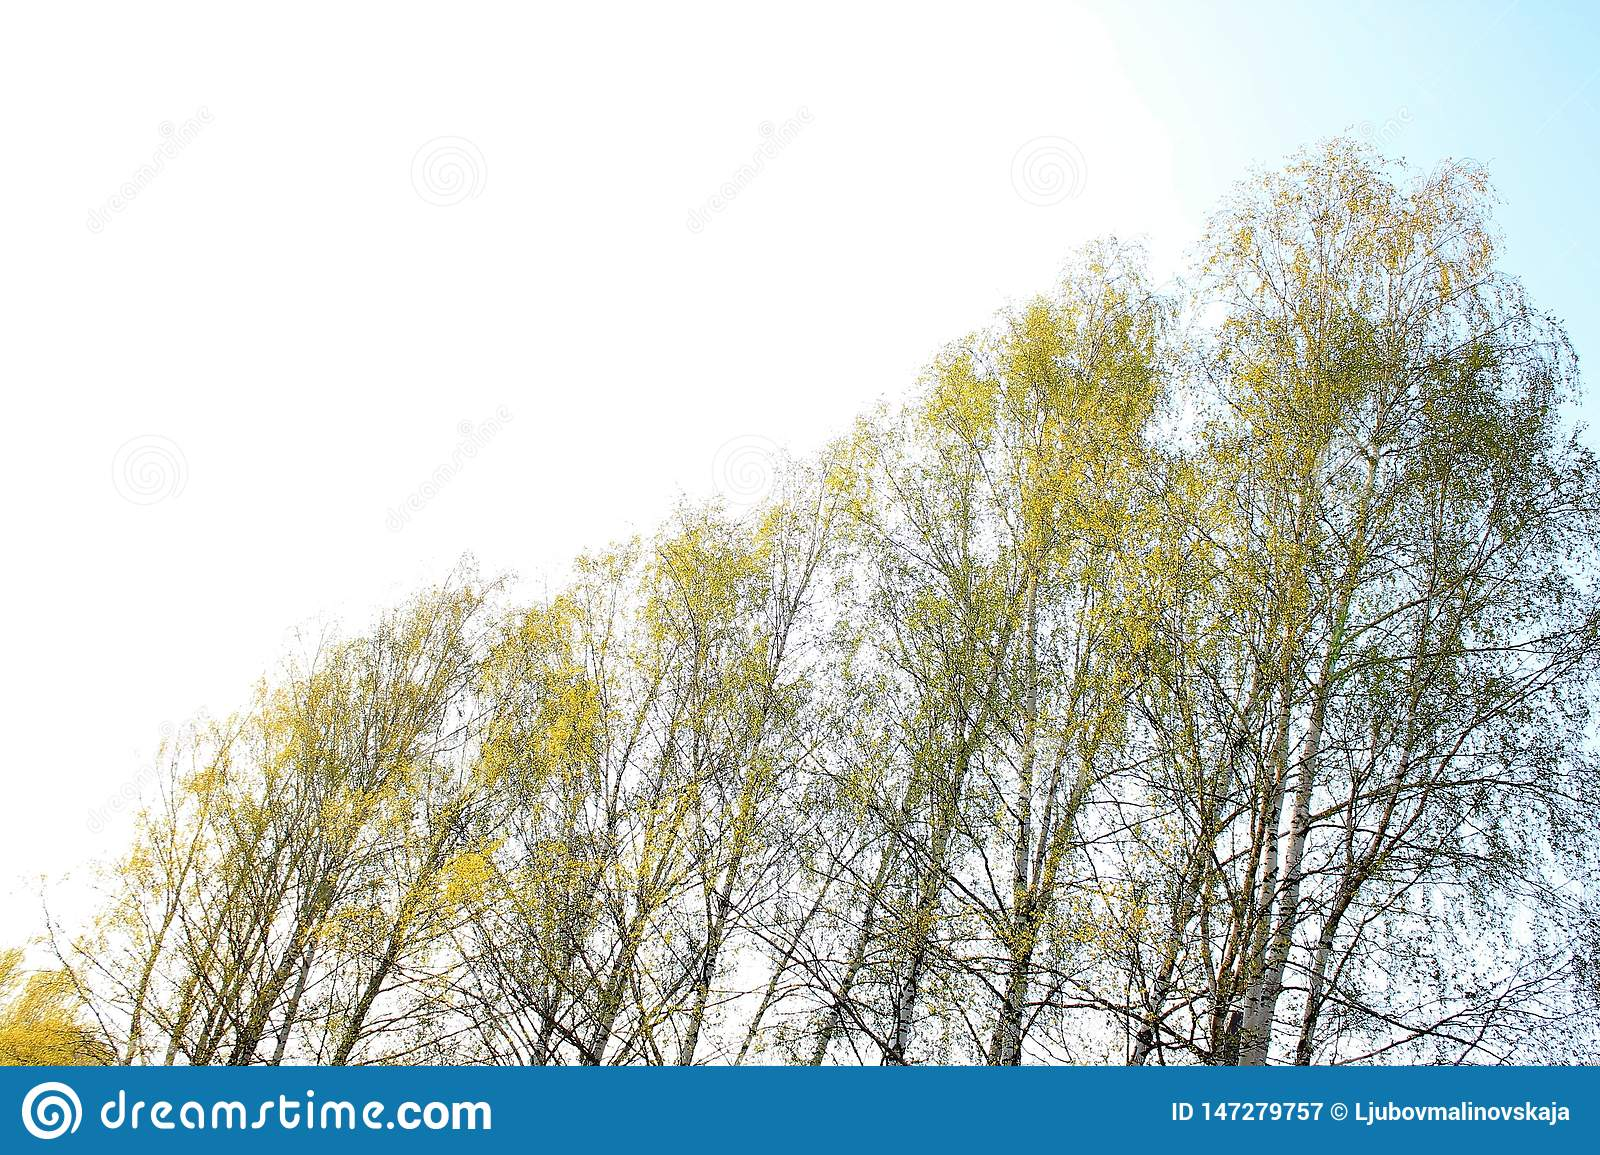 Sunny spring sky and birches.